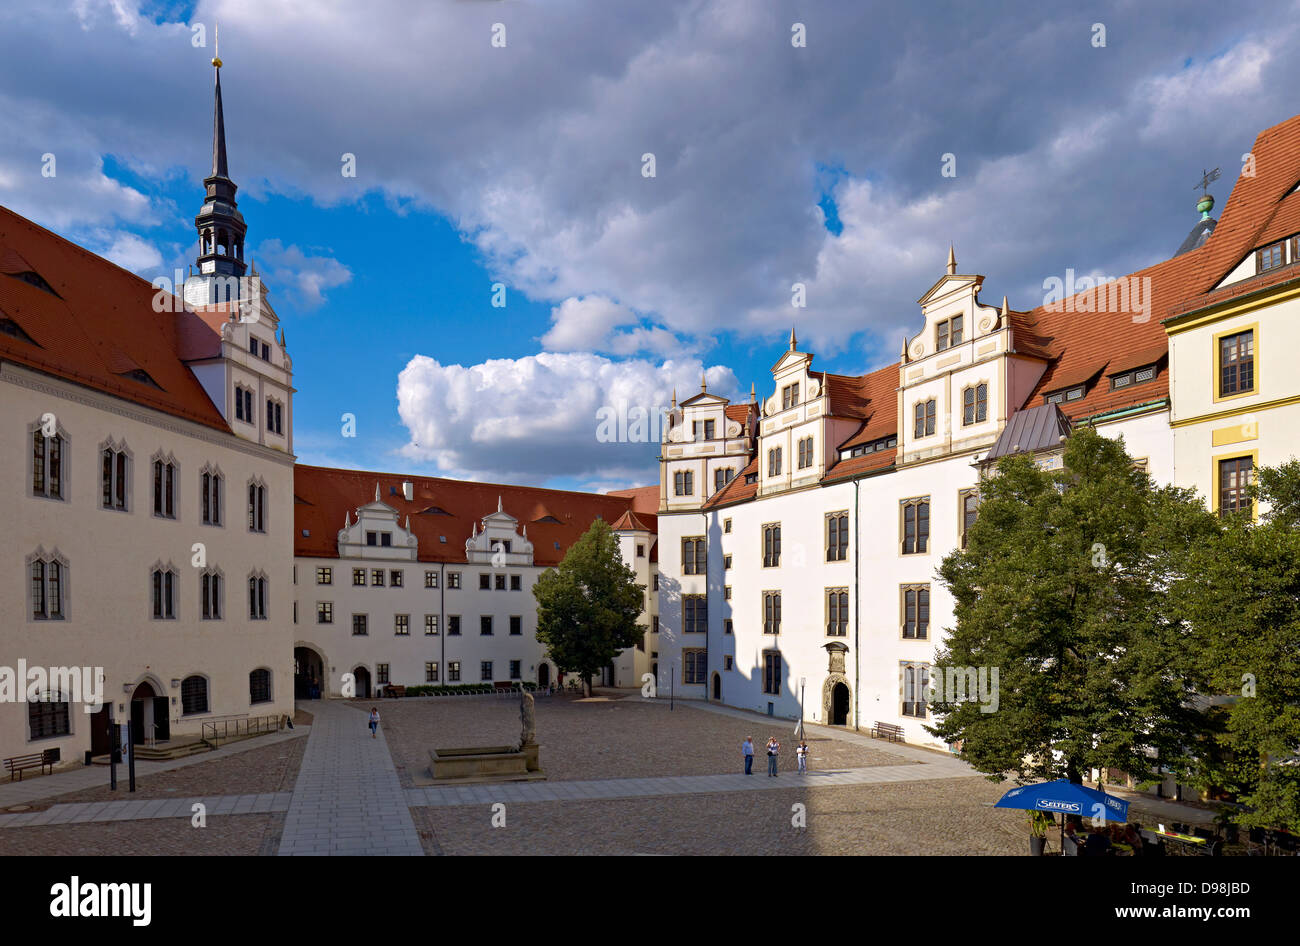 Courtyard of Hartenfels Castle, Torgau, Saxony Germany Stock Photo